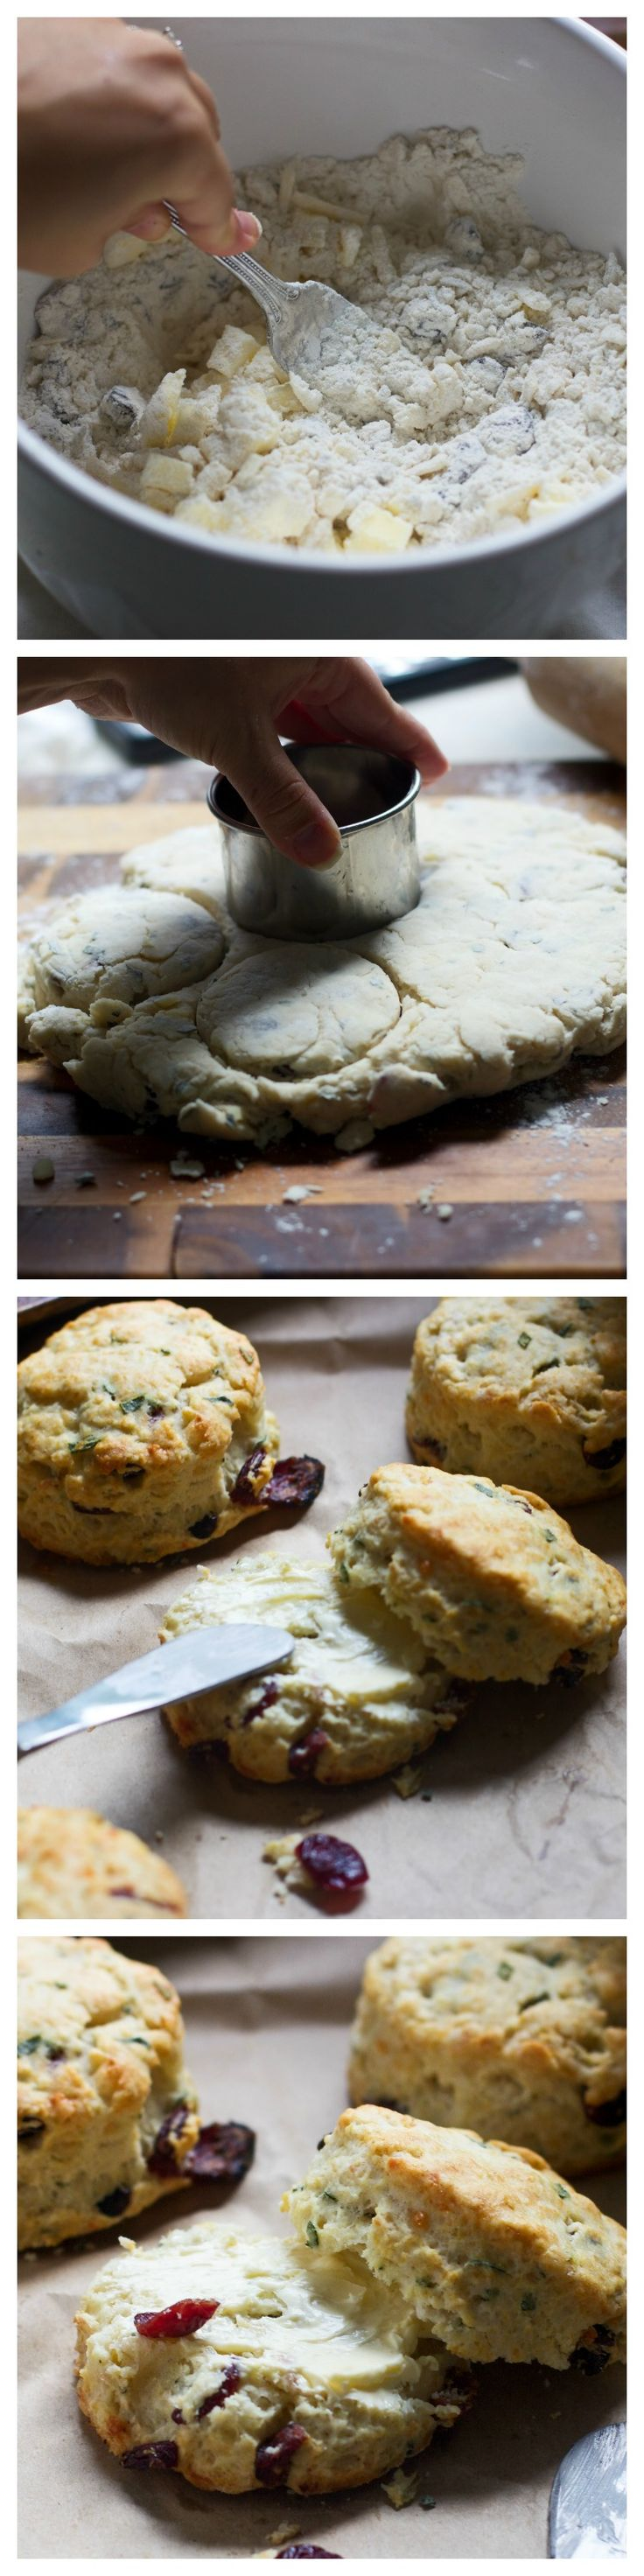 Super Easy Gruyere, Cranberry and Sage Buttermilk Biscuits - The perfect alternative to rolls on your holiday table! #inspiredgathering #spon